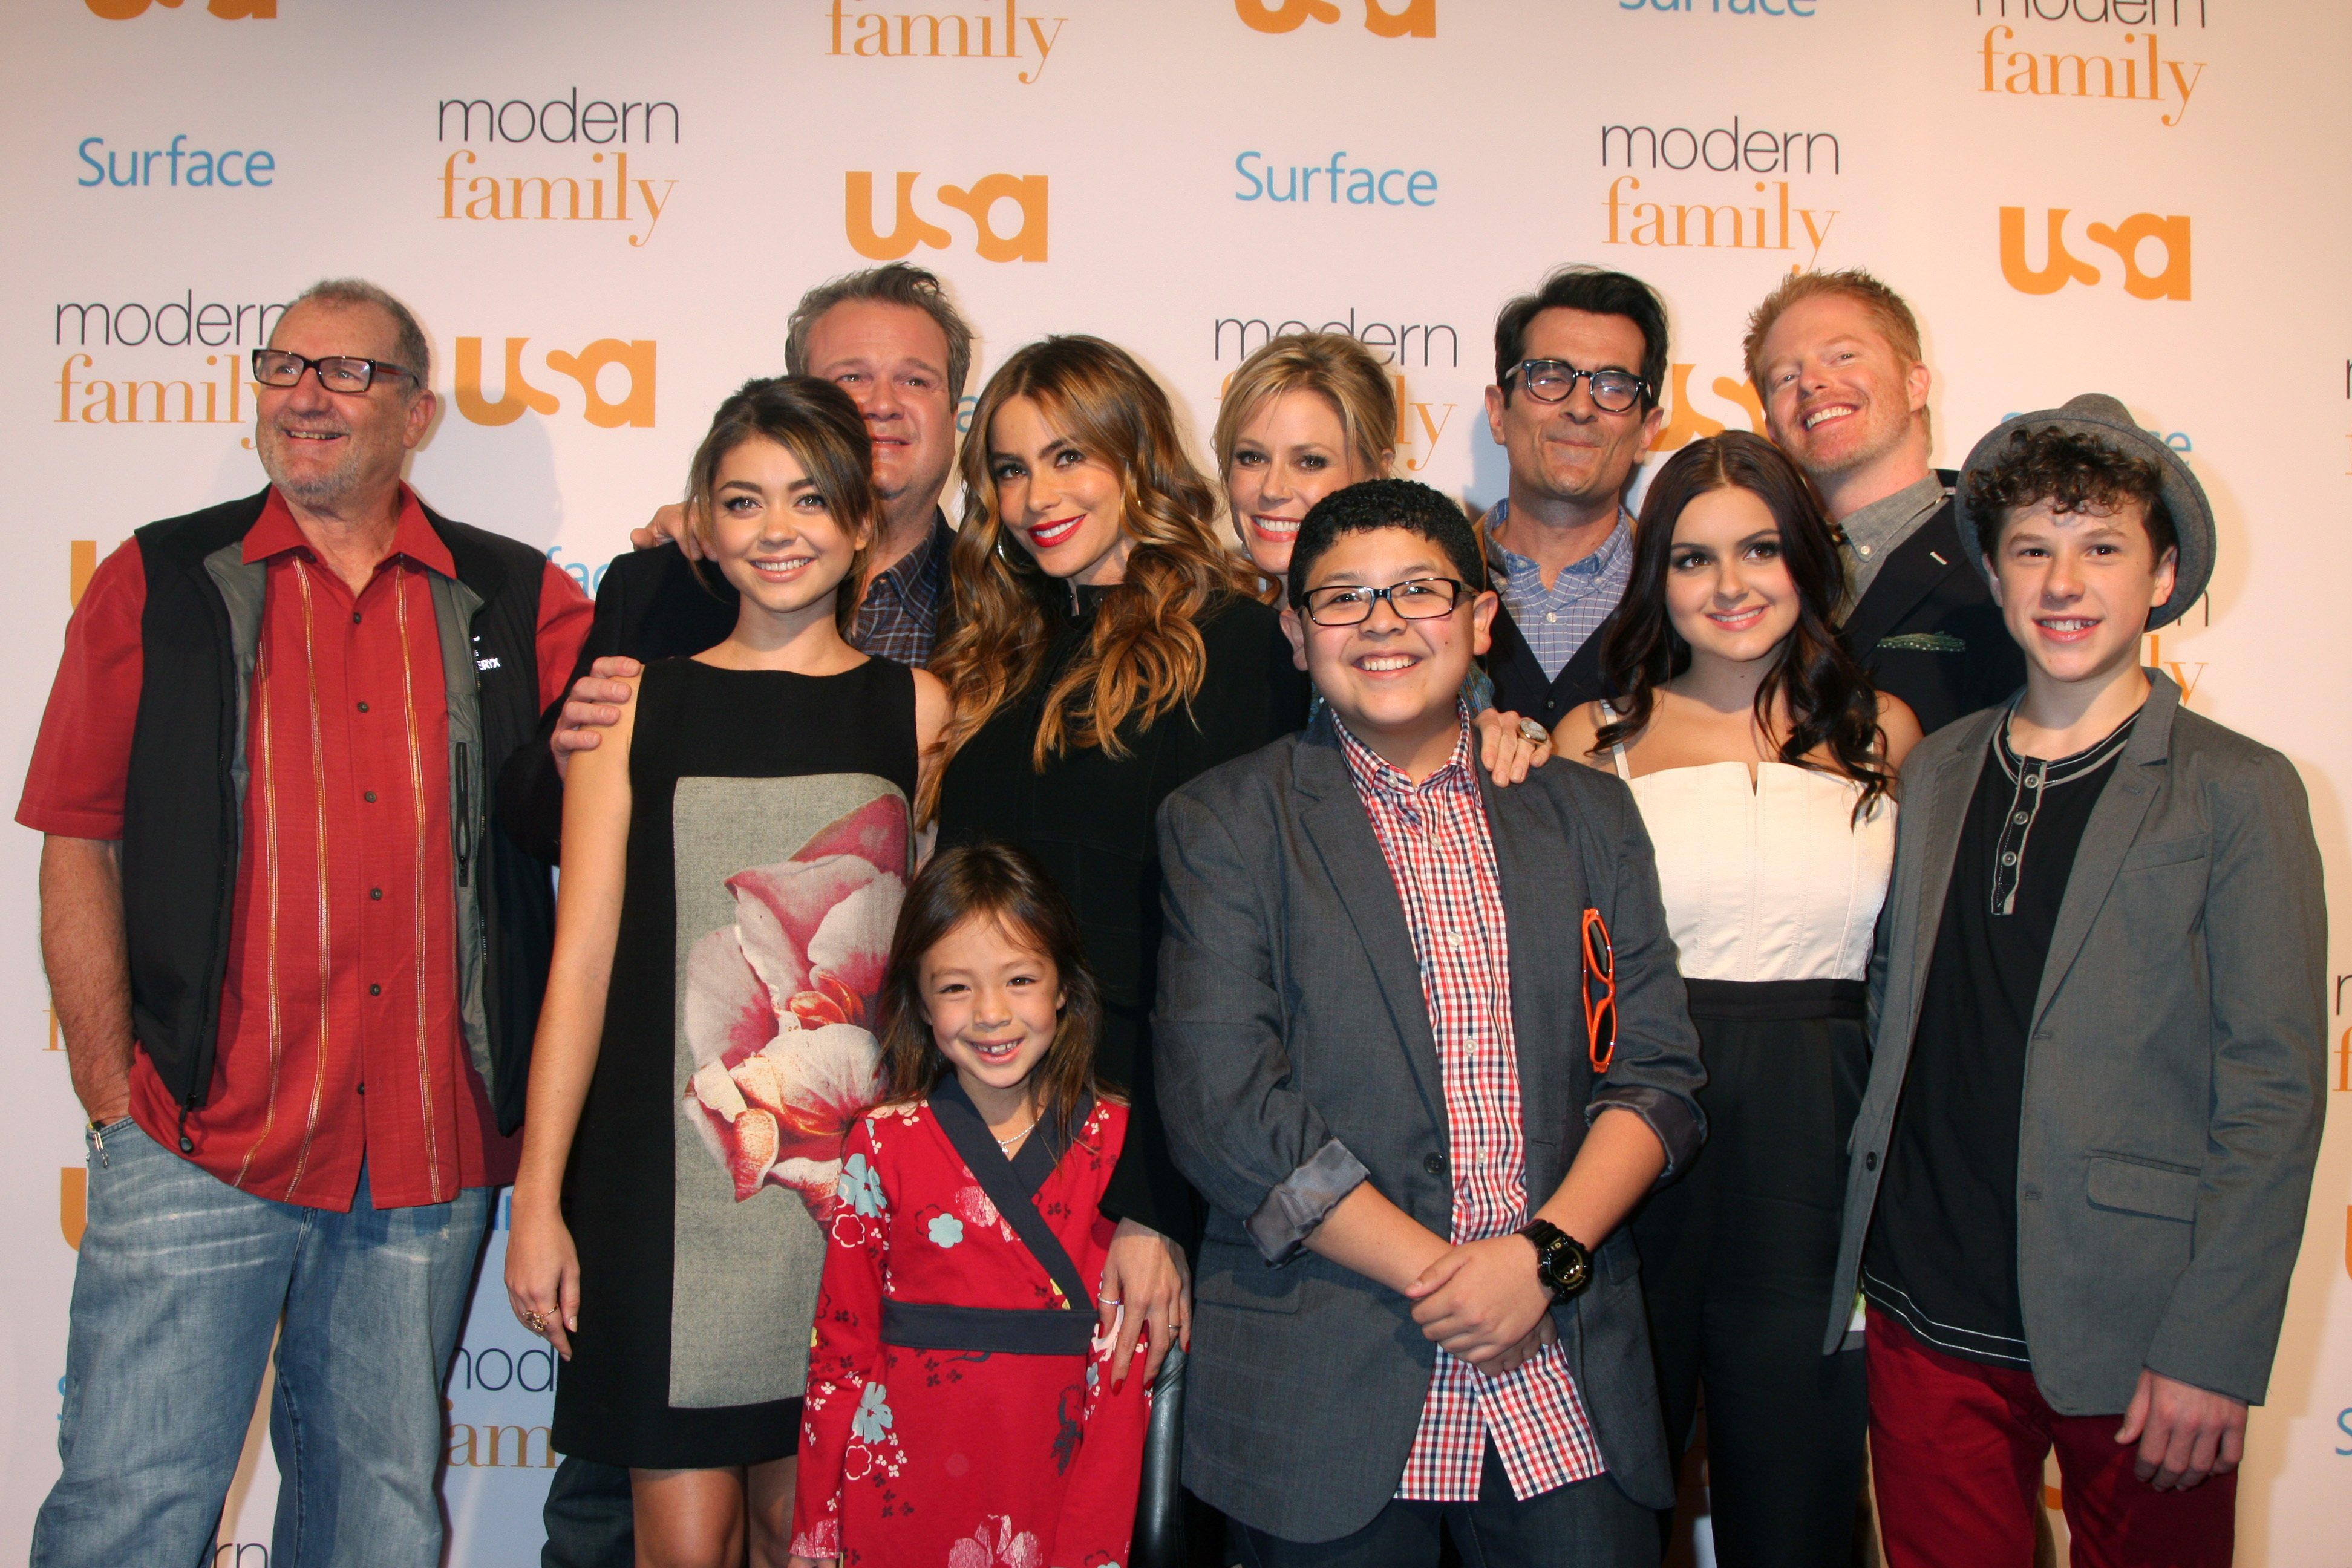 The Cast Of 'Modern Family' In Real Life